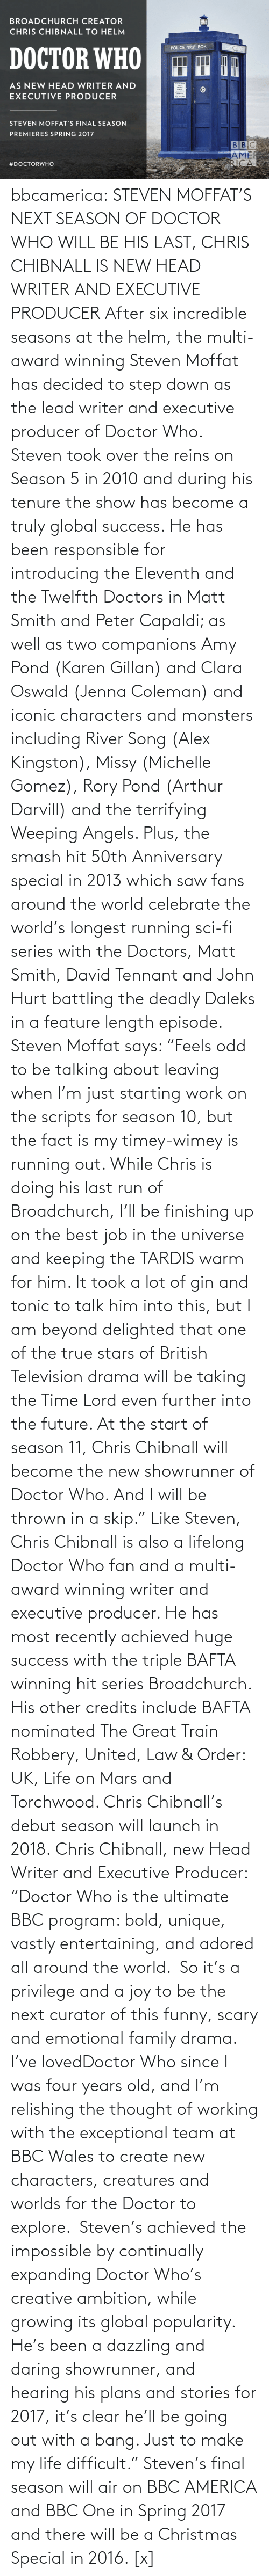 """karen gillan: BROADCHURCH CREATOR  CHRIS CHIBNALL TO HELM  POICE BOK  POLICE PYALLE BOX  DOCTOR WHO  AS NEW HEAD WRITER AND  PARE IAPIR  PUBLIC  EXECUTIVE PRODUCER  PULL TO OPEN  STEVEN MOFFAT'S FINAL SEASON  PREMIERES SPRING 2017  BBC  AMER  RICA  bbcamerica:  STEVEN MOFFAT'S NEXT SEASON OF DOCTOR WHO WILL BE HIS LAST,CHRIS CHIBNALL IS NEW HEAD WRITER AND EXECUTIVE PRODUCER    After six incredible seasons at the helm, the multi-award winning Steven Moffat has decided to step down as the lead writer and executive producer of Doctor Who. Steven took over the reins on Season 5 in 2010 and during his tenure the show has become a truly global success. He has been responsible for introducing the Eleventh and the Twelfth Doctors in Matt Smith and Peter Capaldi; as well as two companions Amy Pond (Karen Gillan) and Clara Oswald (Jenna Coleman) and iconic characters and monsters including River Song (Alex Kingston), Missy (Michelle Gomez), Rory Pond (Arthur Darvill) and the terrifying Weeping Angels. Plus, the smash hit 50th Anniversary special in 2013 which saw fans around the world celebrate the world's longest running sci-fi series with the Doctors, Matt Smith, David Tennant and John Hurt battling the deadly Daleks in a feature length episode. Steven Moffat says: """"Feels odd to be talking about leaving when I'm just starting work on the scripts for season 10, but the fact is my timey-wimey is running out. While Chris is doing his last run of Broadchurch, I'll be finishing up on the best job in the universe and keeping the TARDIS warm for him. It took a lot of gin and tonic to talk him into this, but I am beyond delighted that one of the true stars of British Television drama will be taking the Time Lord even further into the future. At the start of season 11, Chris Chibnall will become the new showrunner of Doctor Who. And I will be thrown in a skip."""" Like Steven, Chris Chibnall is also a lifelong Doctor Who fan and a multi-award winning writer and executive producer. He """